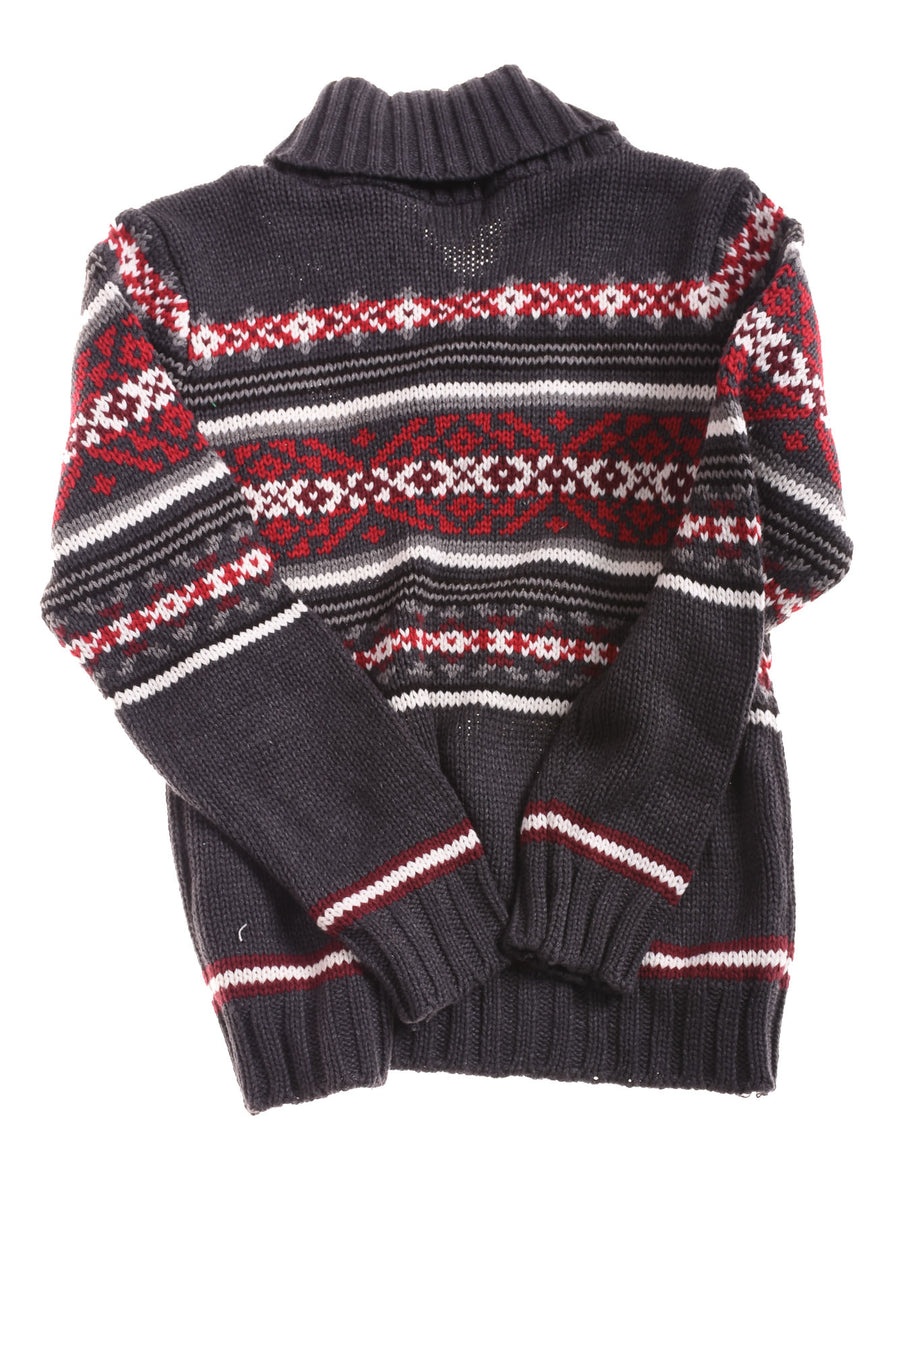 NEW The Children's Place Boy's Sweater 7/8 Gray, Red, & White